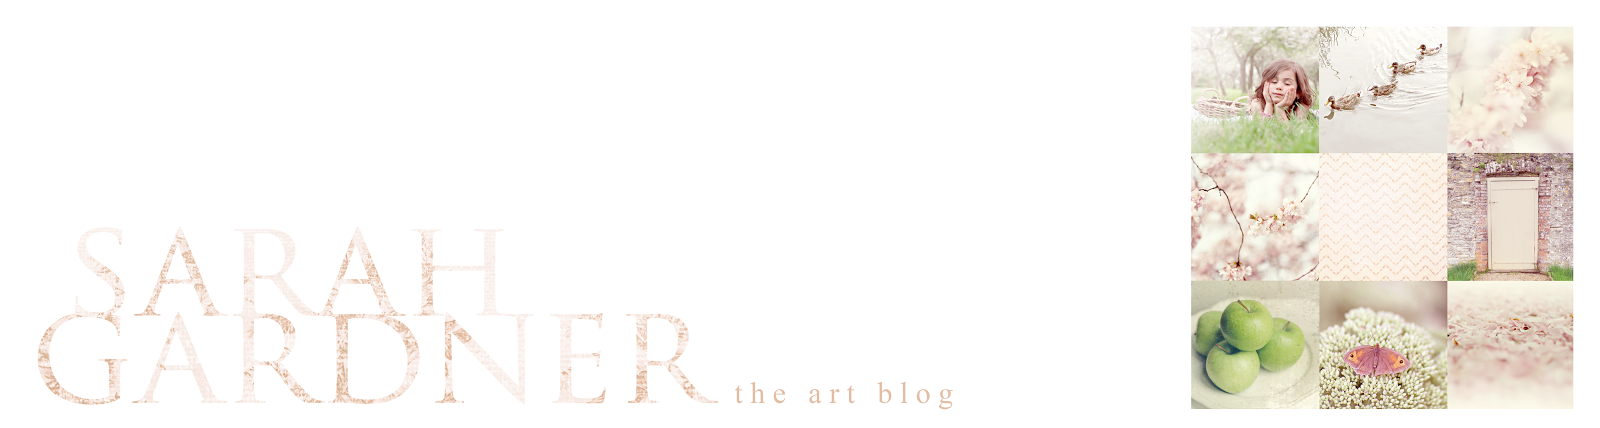 Sarah Gardner {ART BLOG}